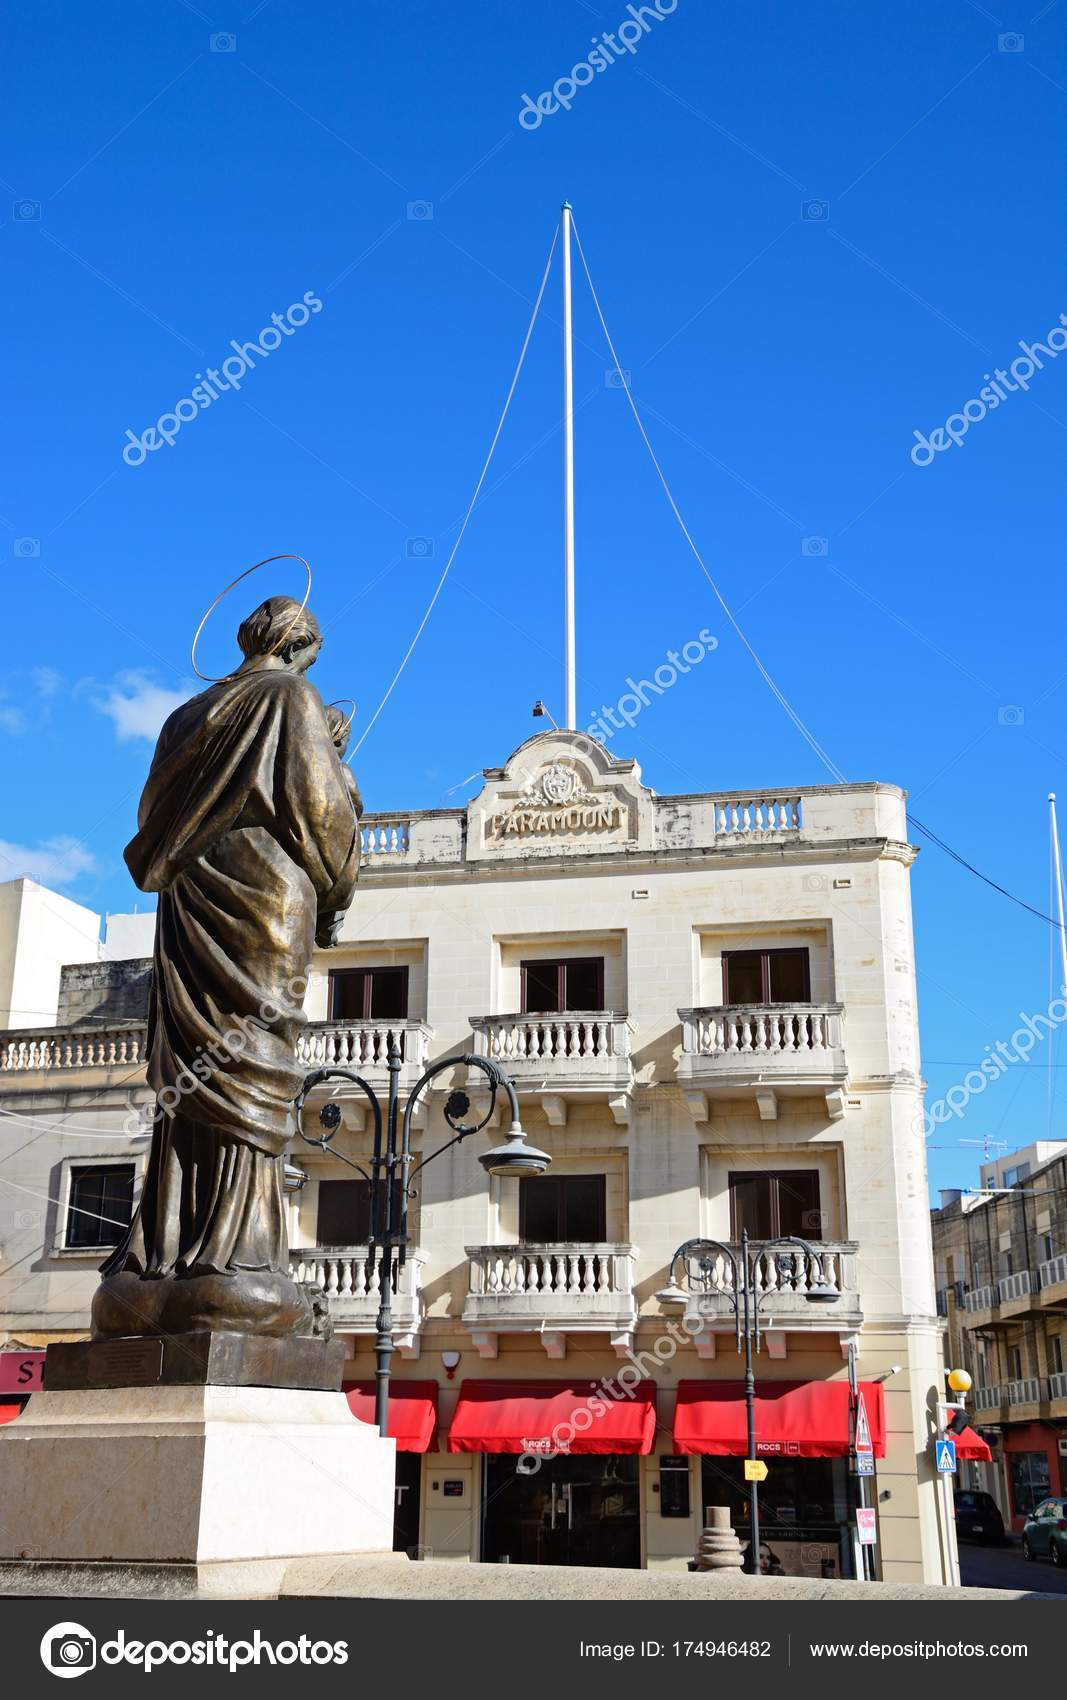 Statue In Front Of The Mosta Dome With The Old Paramount Cinema